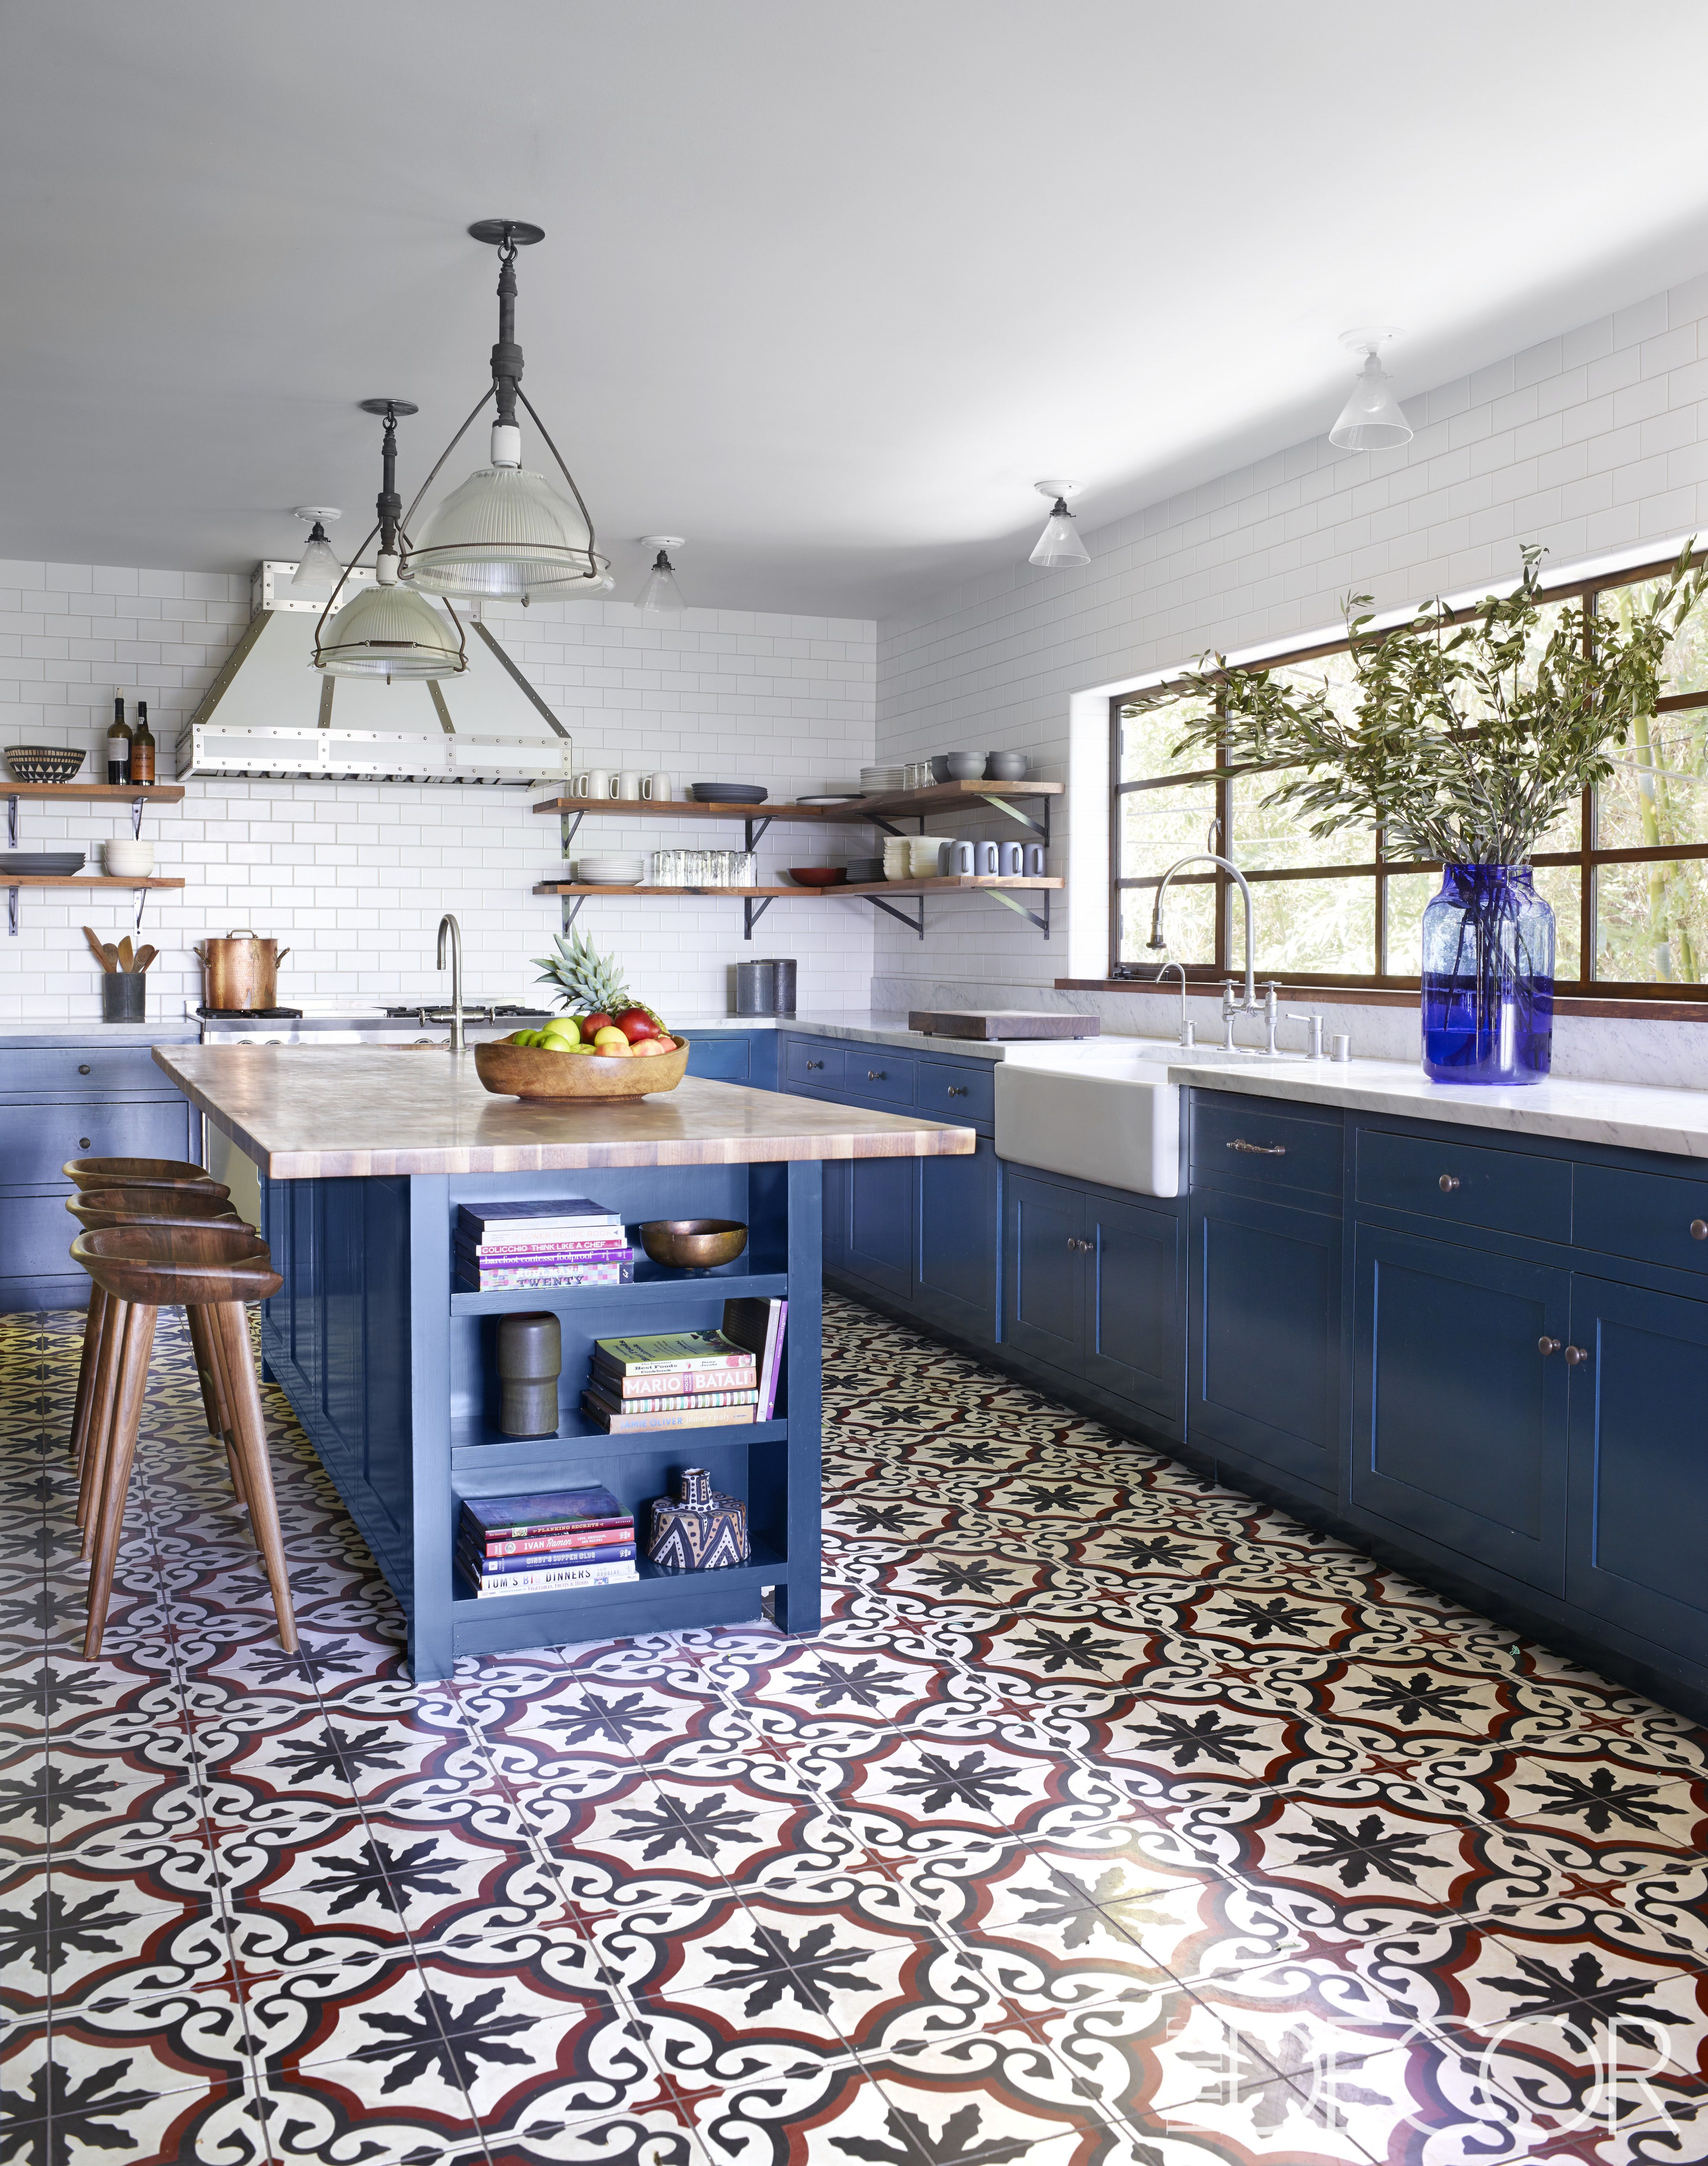 House Tour A Tv Producer S 1920s Spanish Style Home Gets A Complete Makeover Kitchen Inspirations Kitchen Flooring Home Kitchens